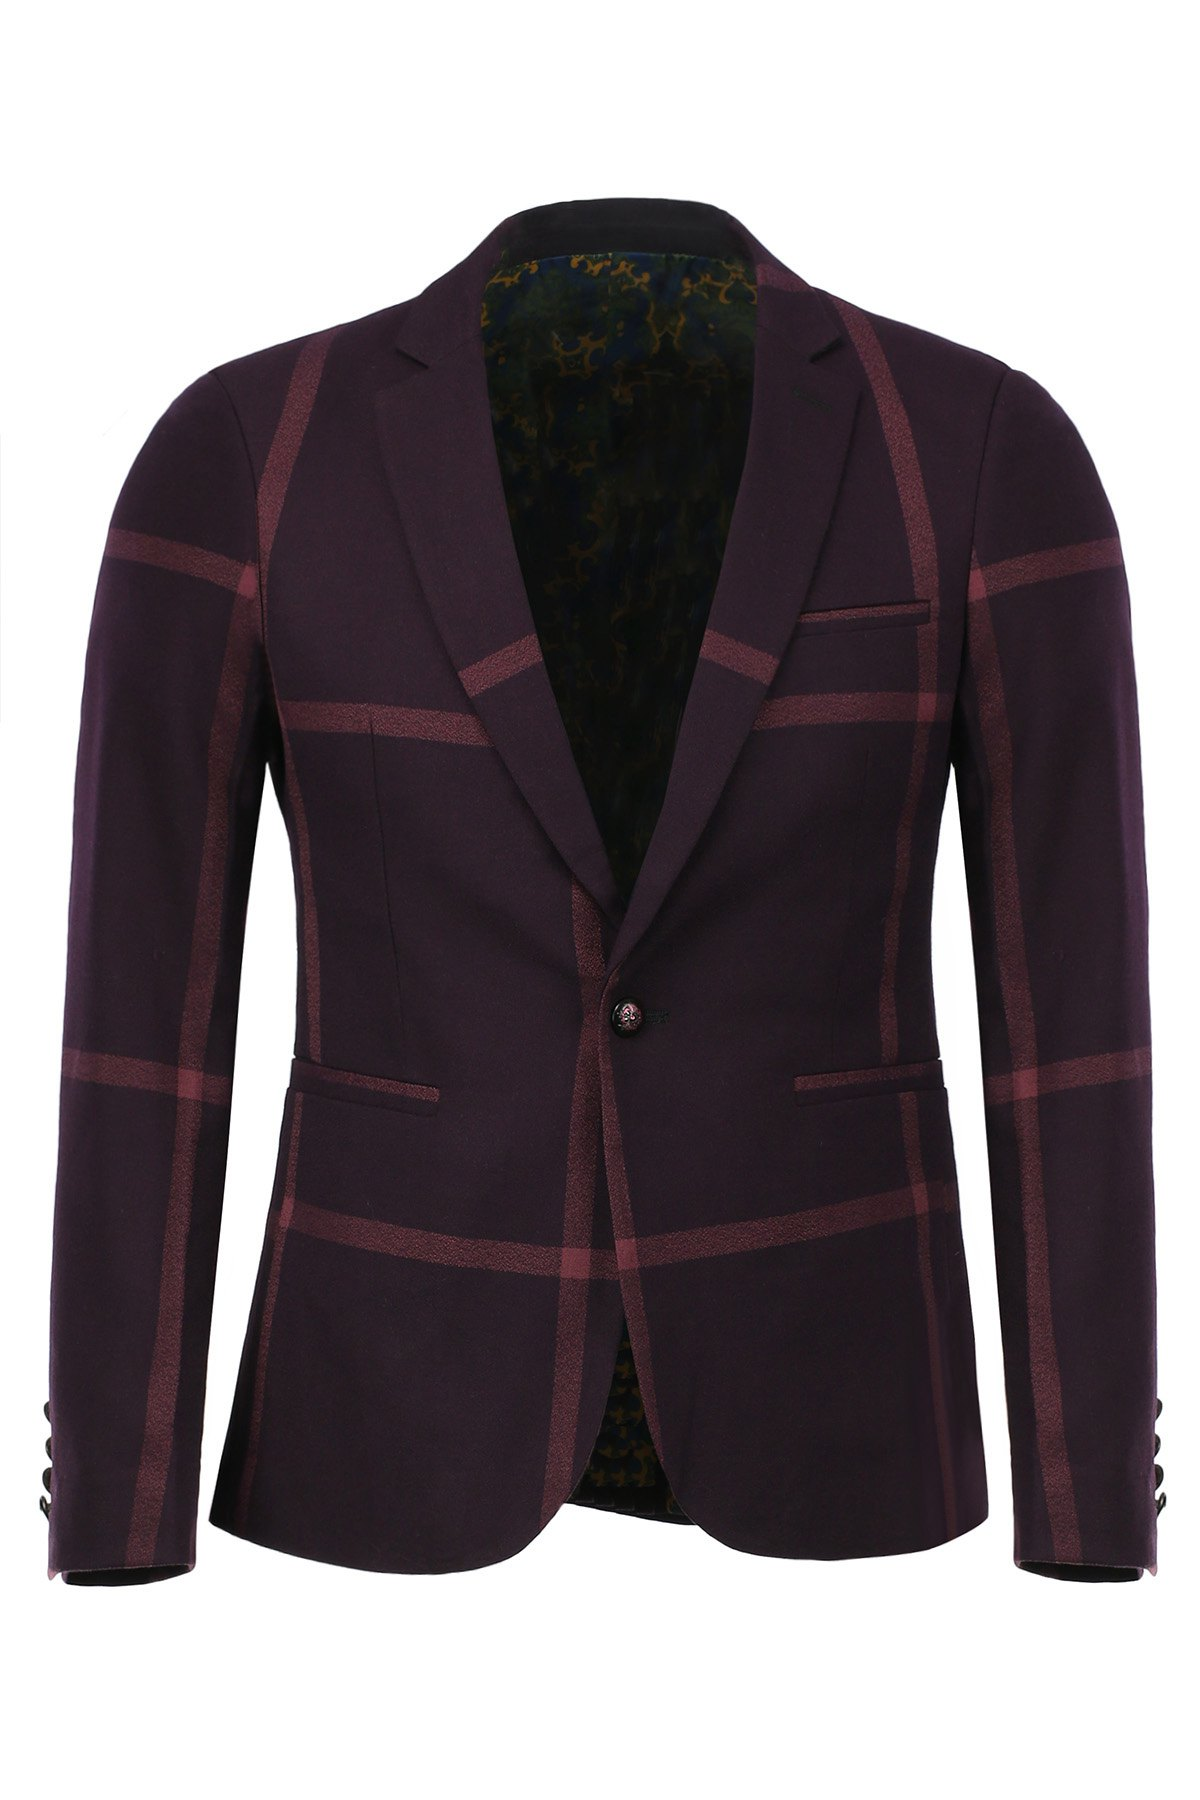 Fashion Slimming Lapel Color Block Plaid Men's Long Sleeves Blazer - RED M